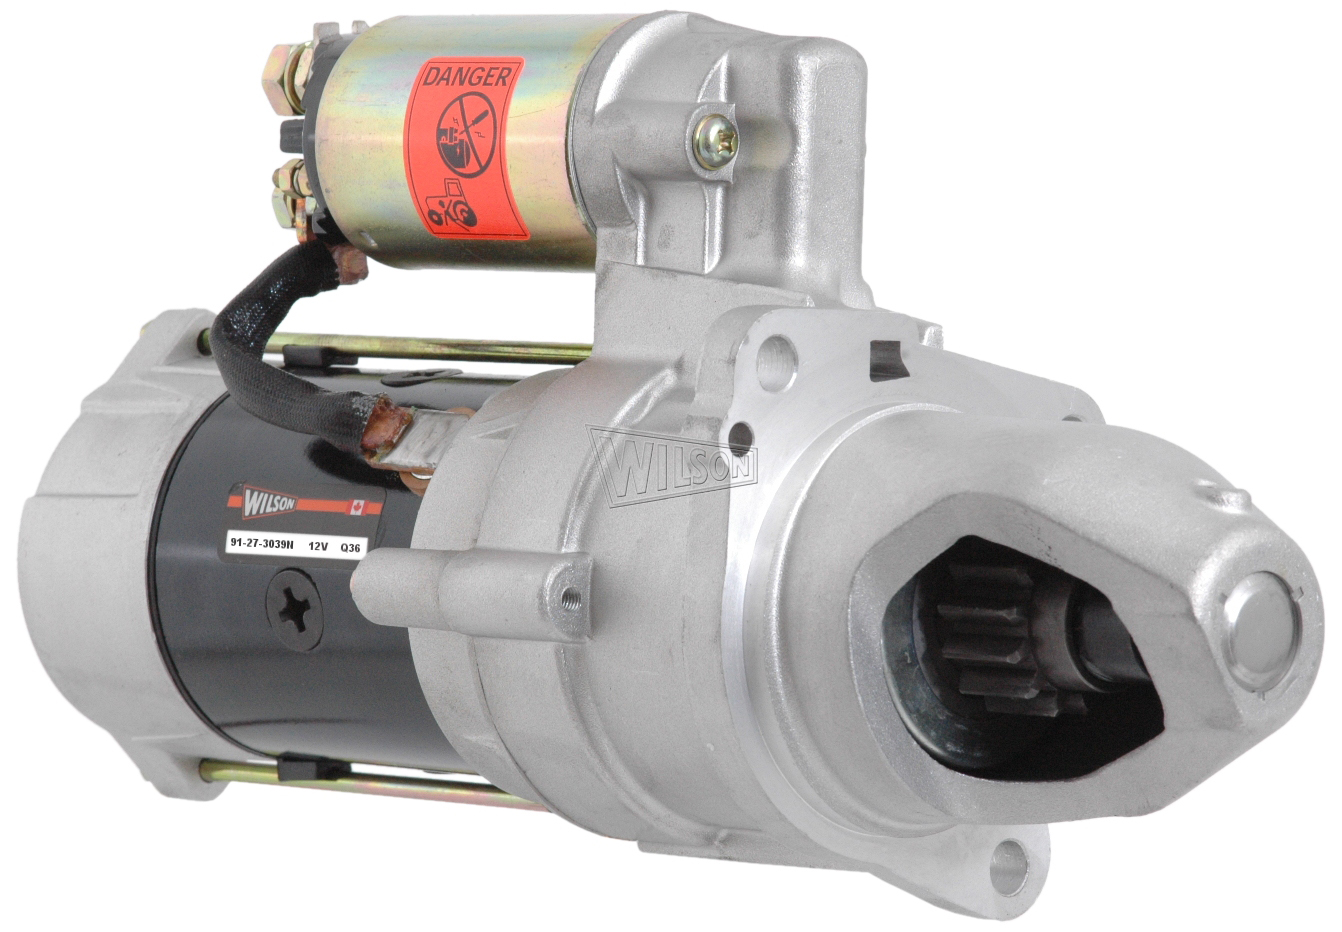 New Wilson Starter replacement for AES NEW 17037N